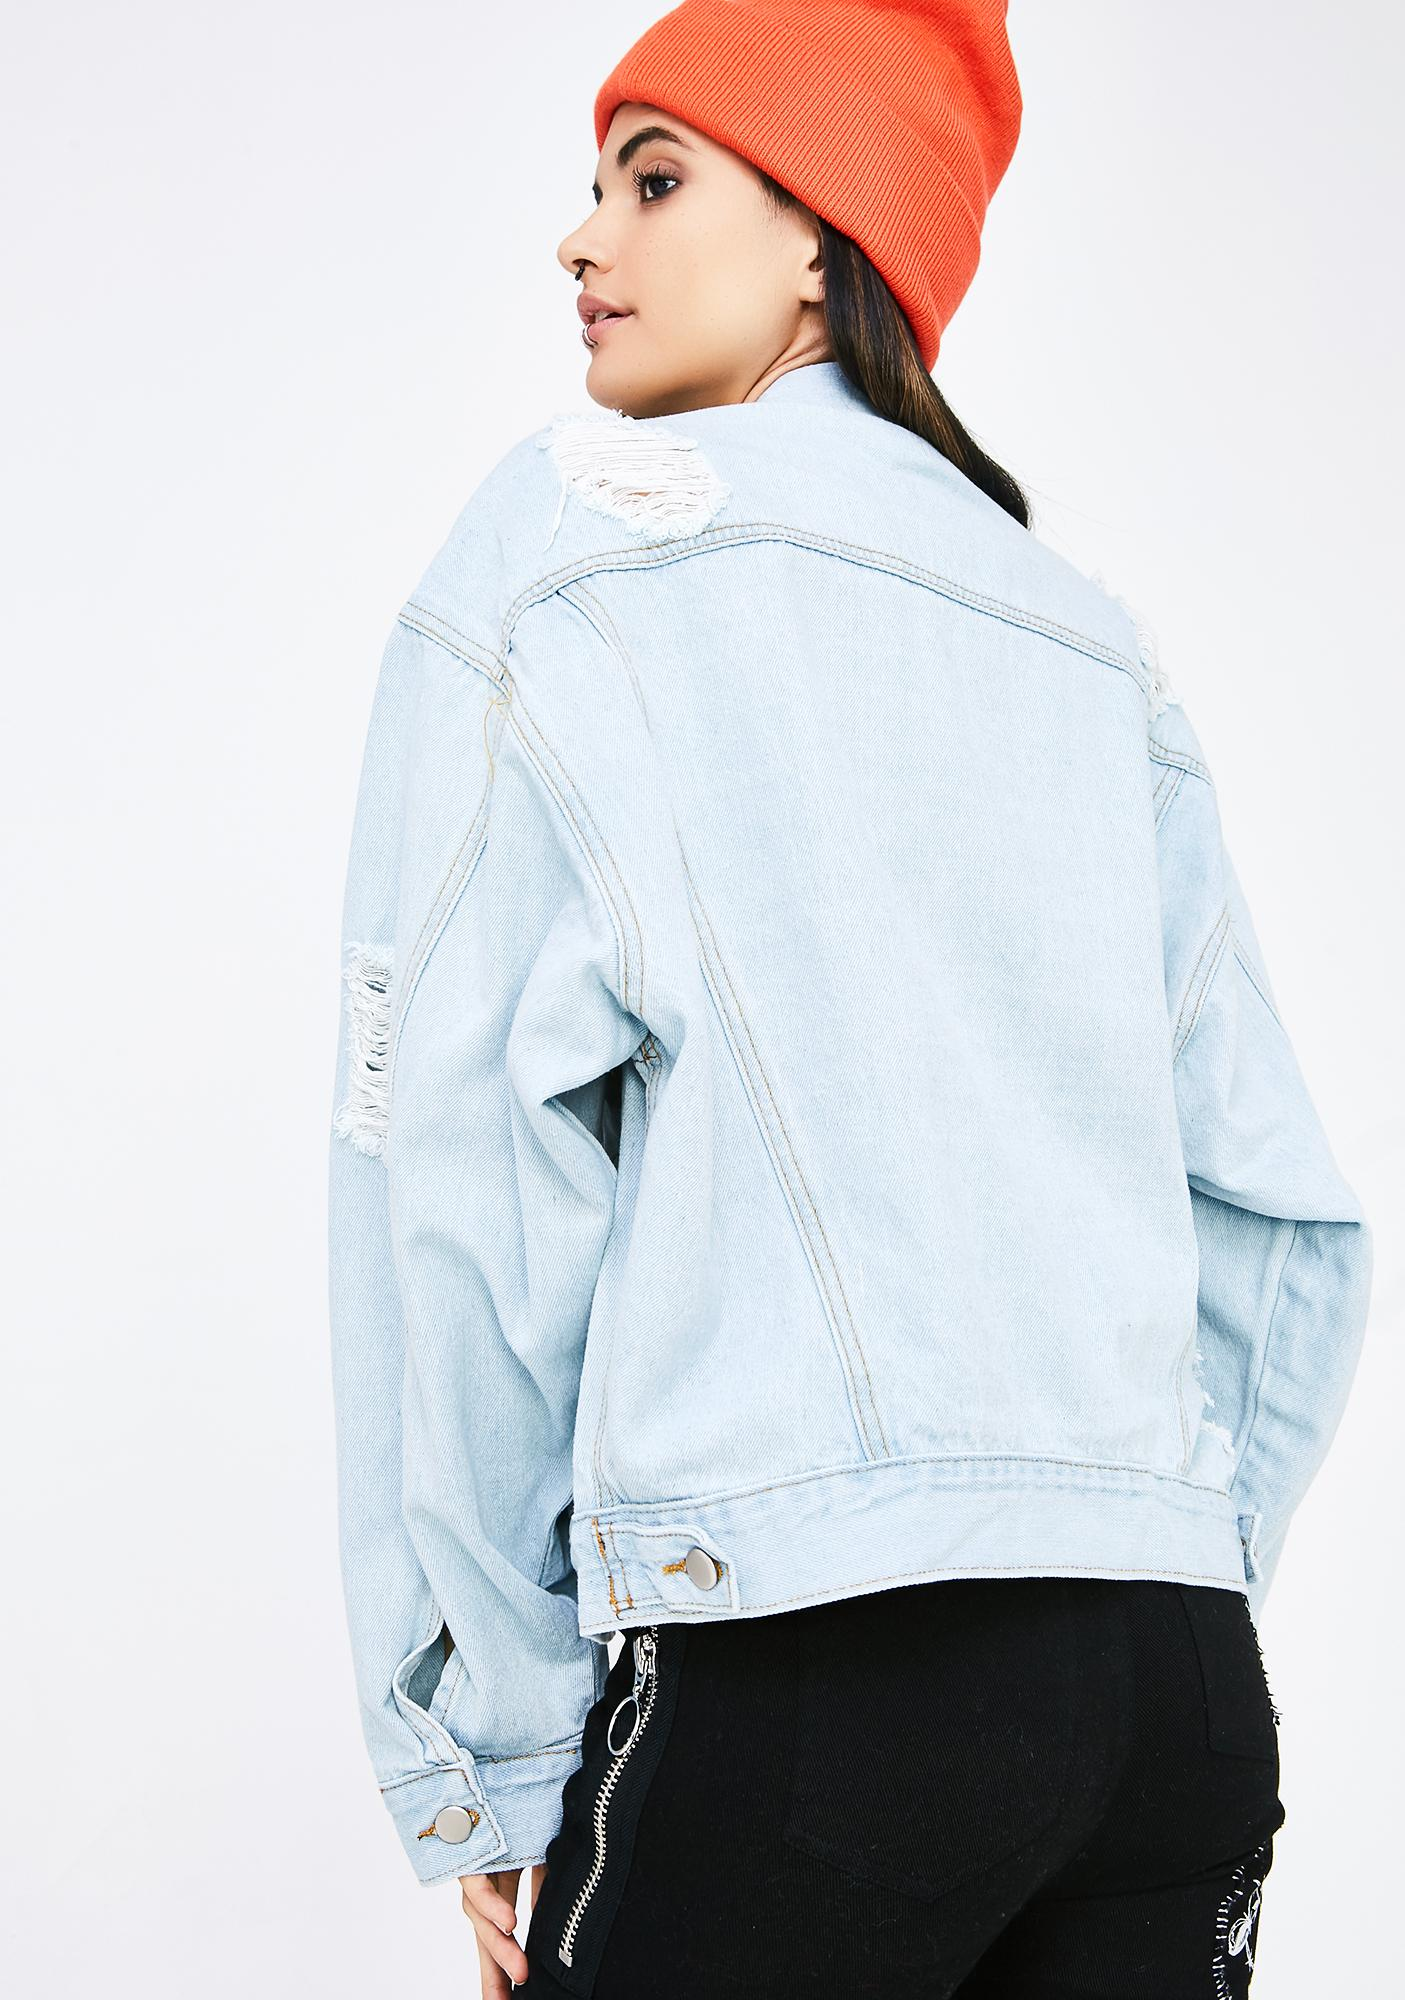 Dominant Jean Denim Jacket